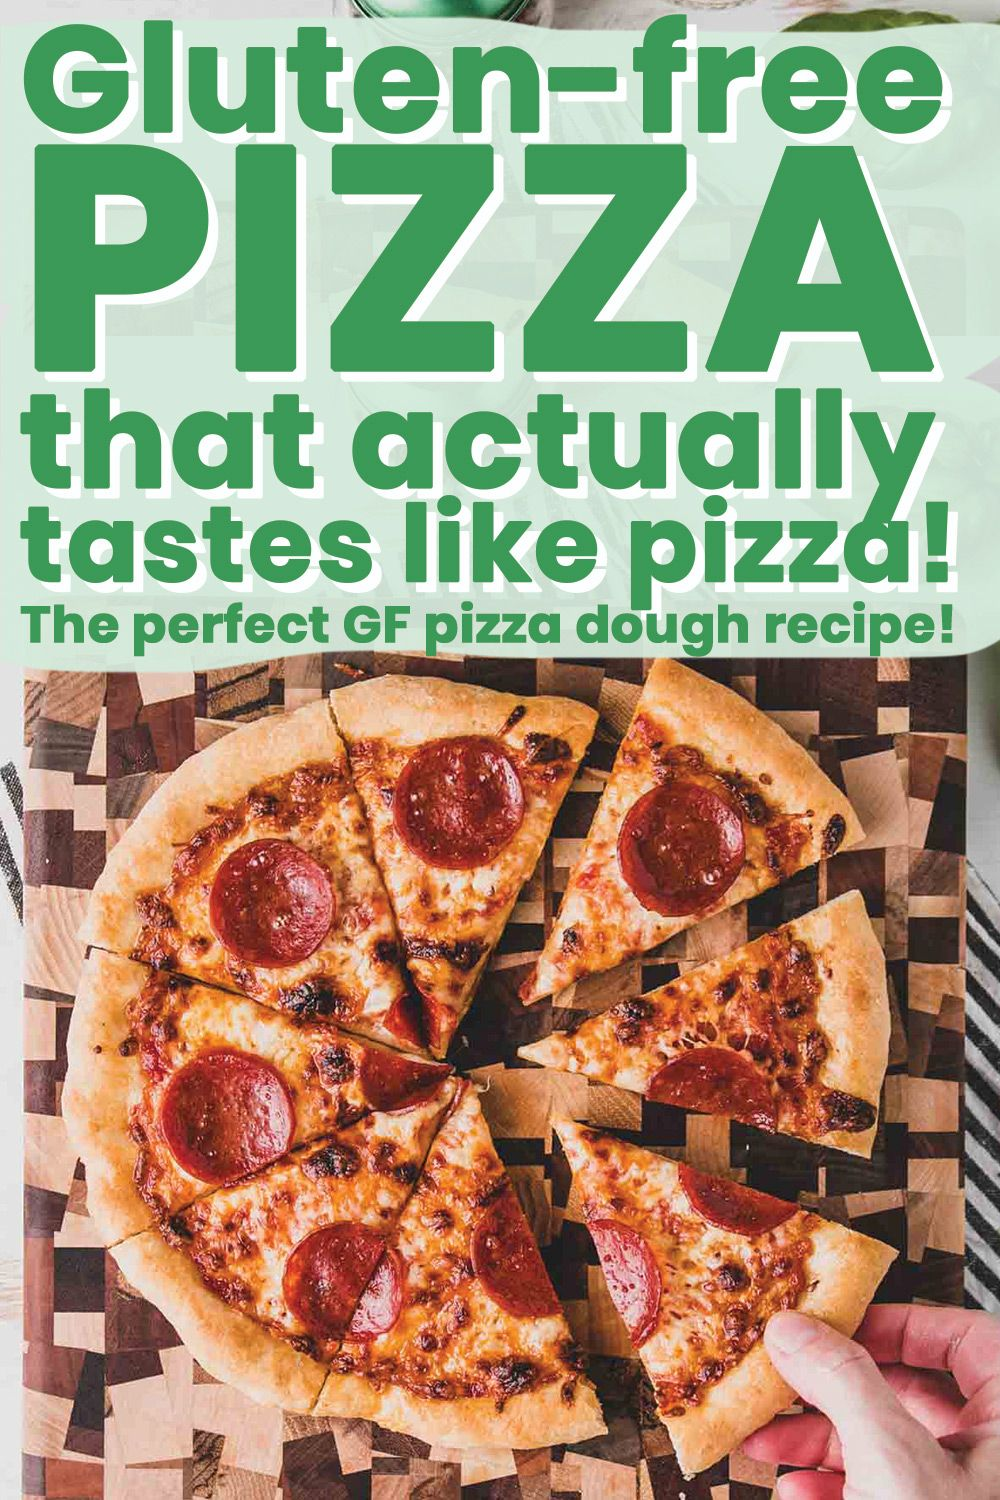 Gluten Free Pizza That Tastes Like Pizza Wheat By The Wayside Recipe In 2020 Gluten Free Pizza Gluten Free Brands Gluten Free Recipes For Dinner